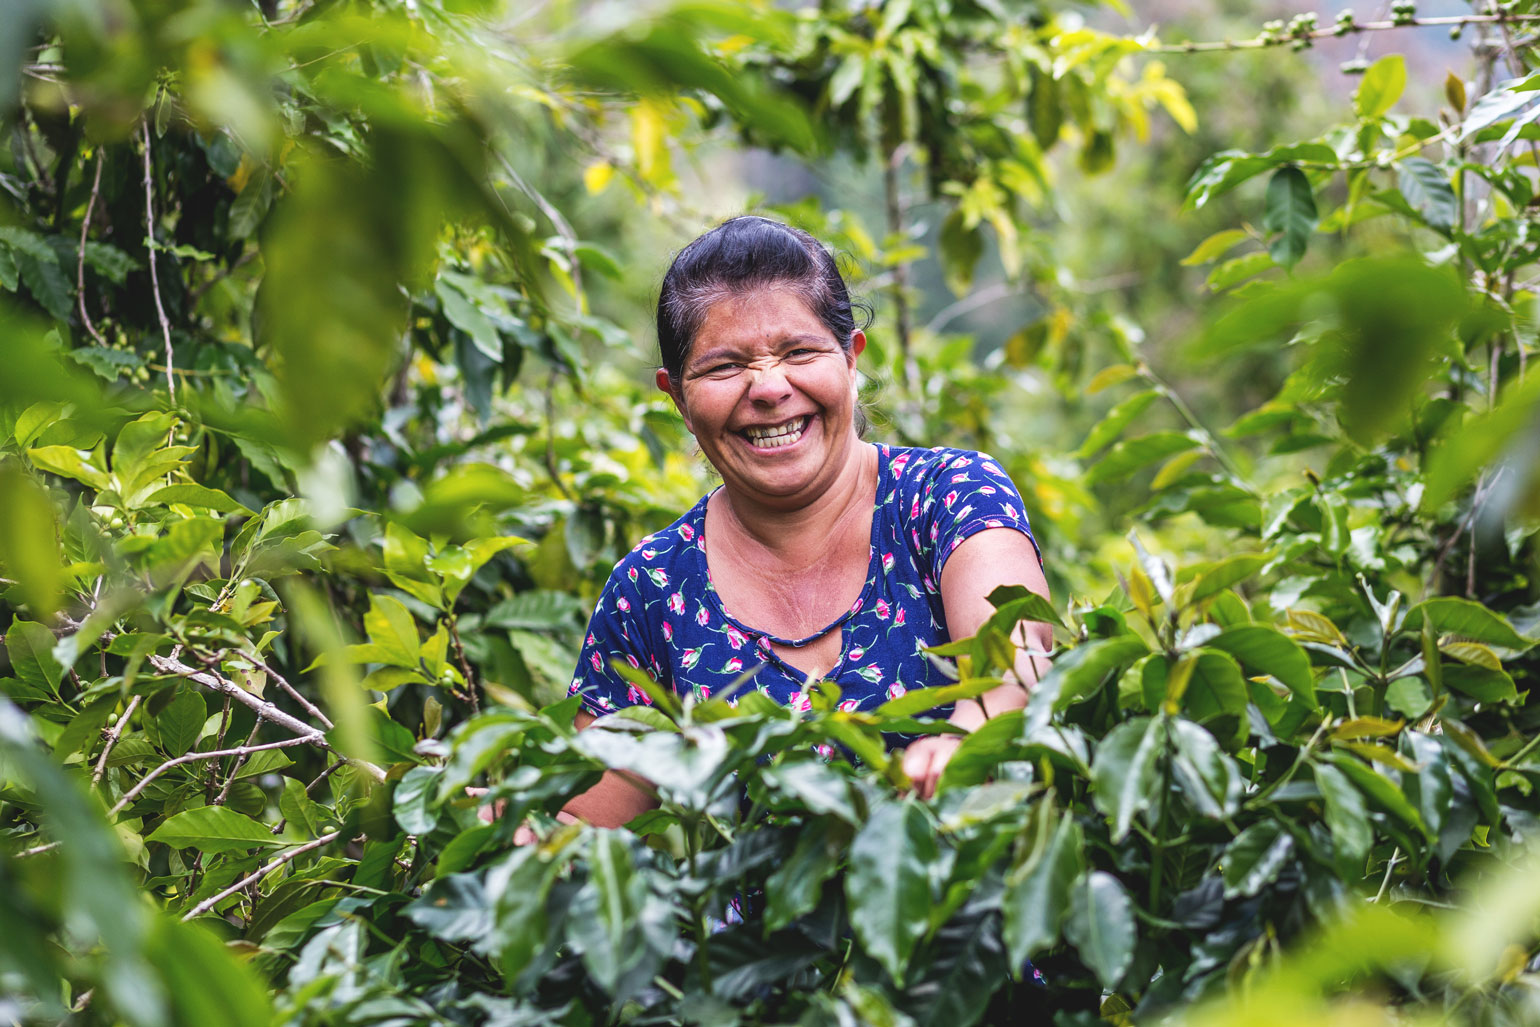 a woman crouches next to a cultivated shrub. She's smiling a huge smile.